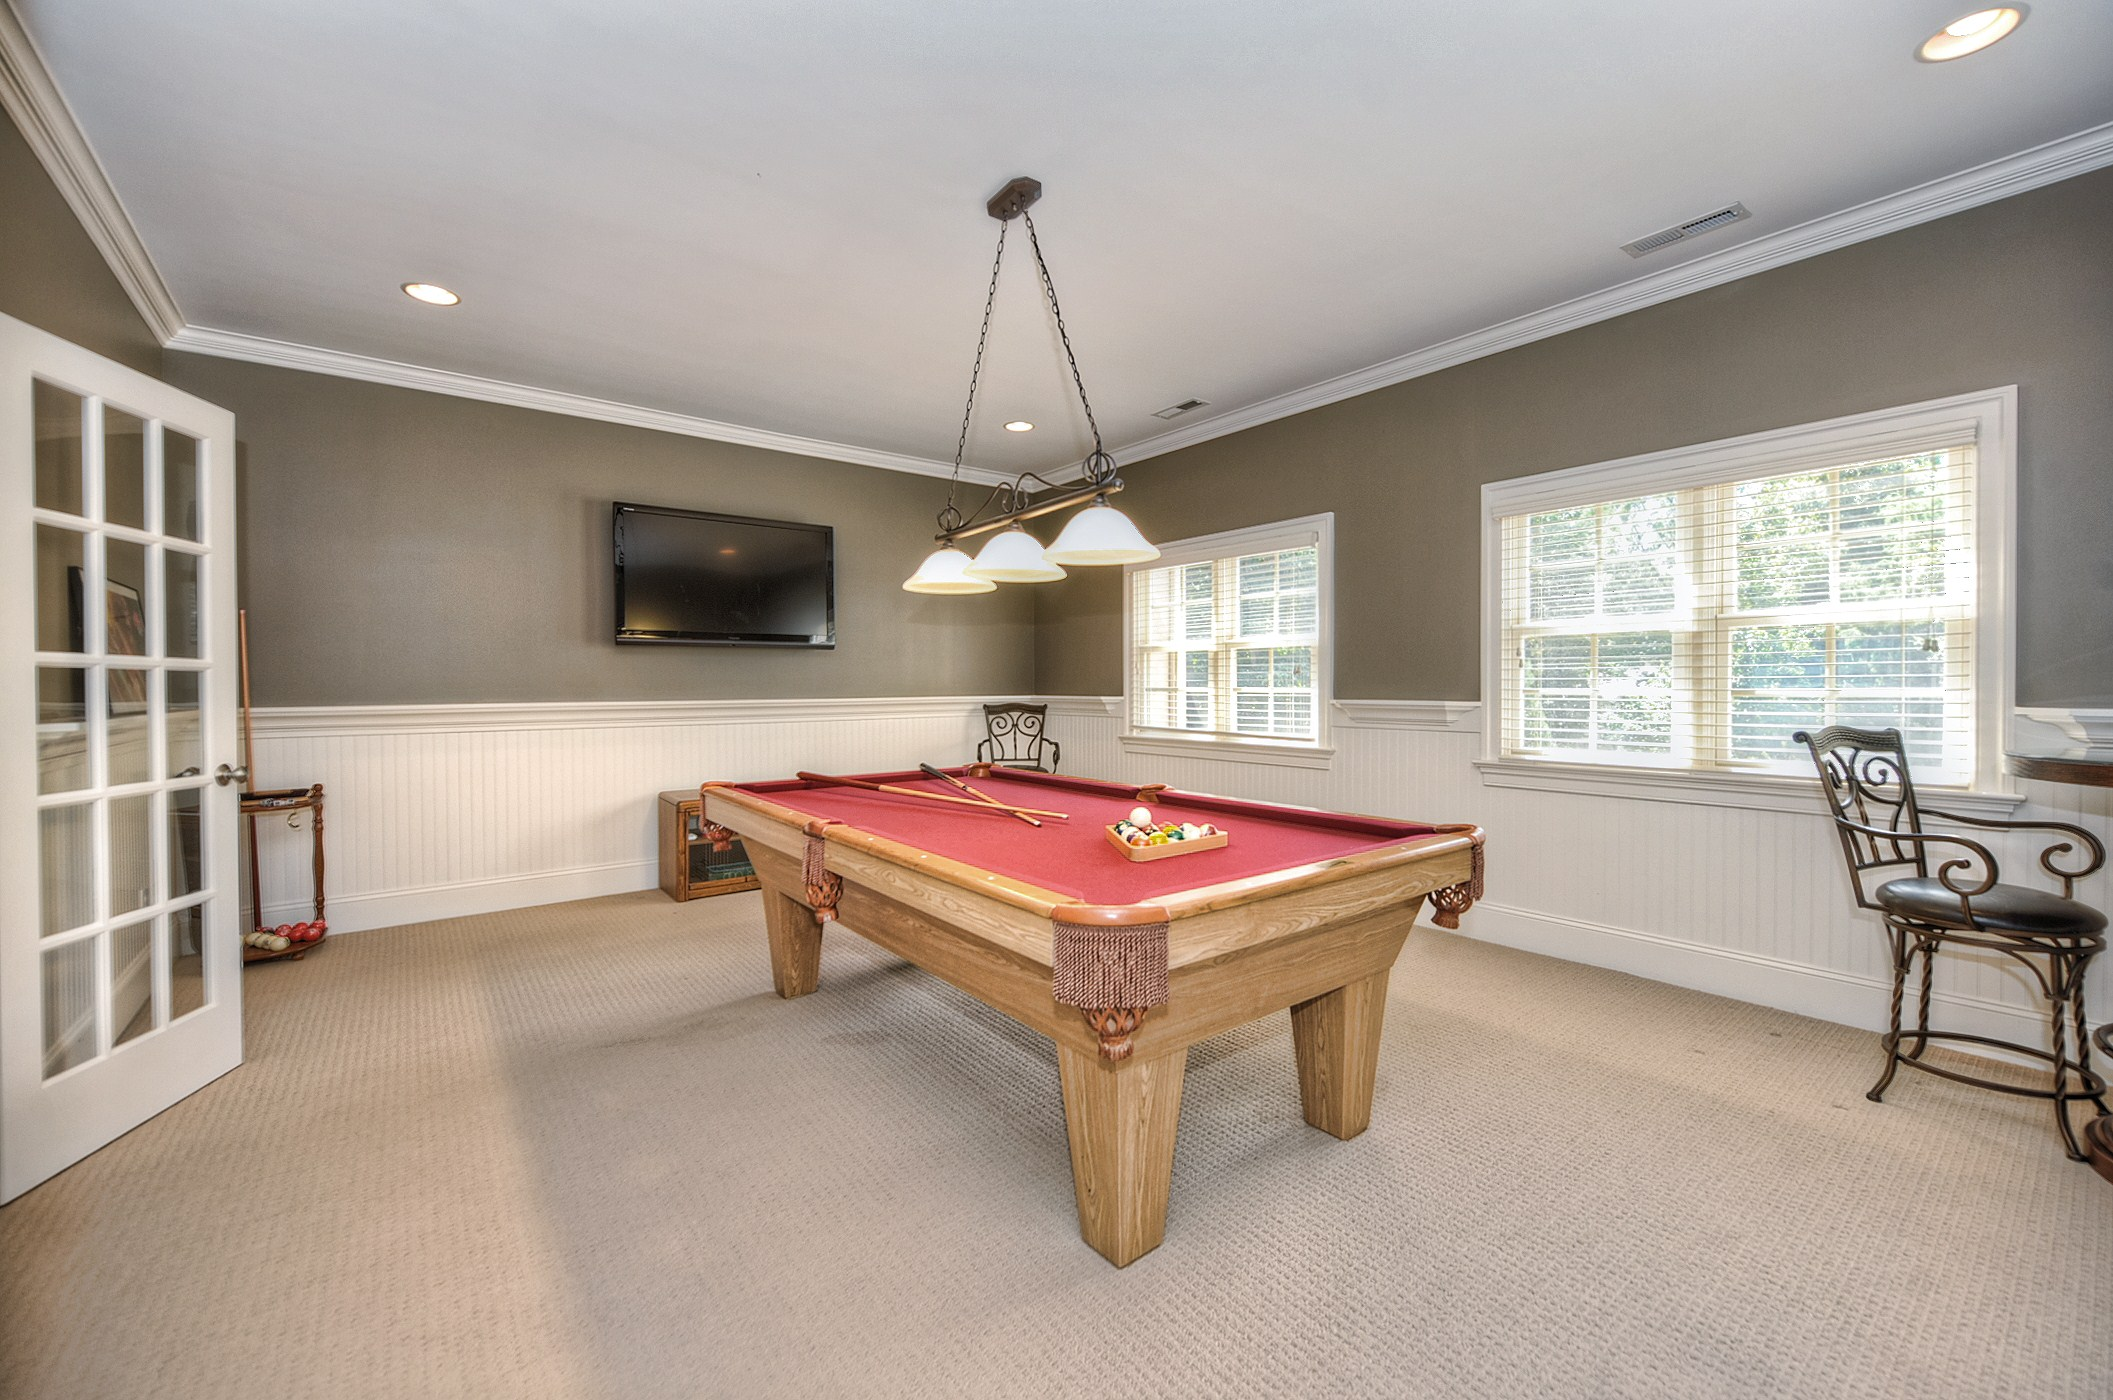 Basement Carpet Billiards